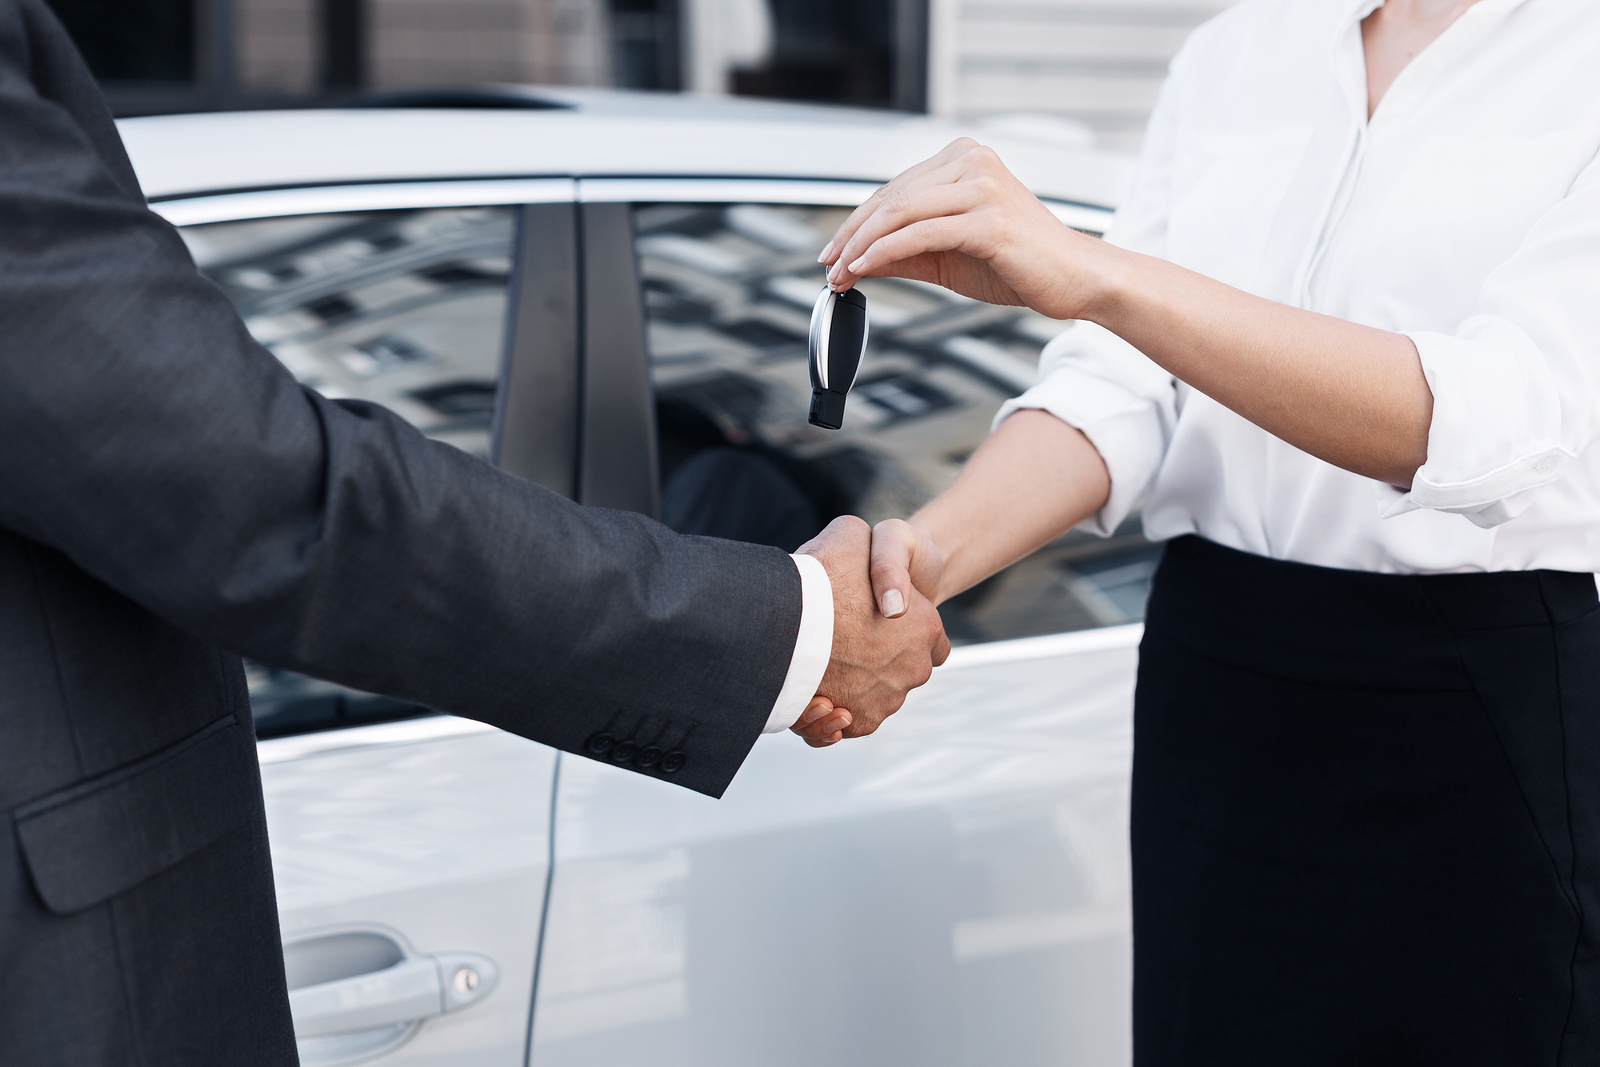 Woman handing over keys to a vehicle after it's been delivered to the new owner and shaking hands.